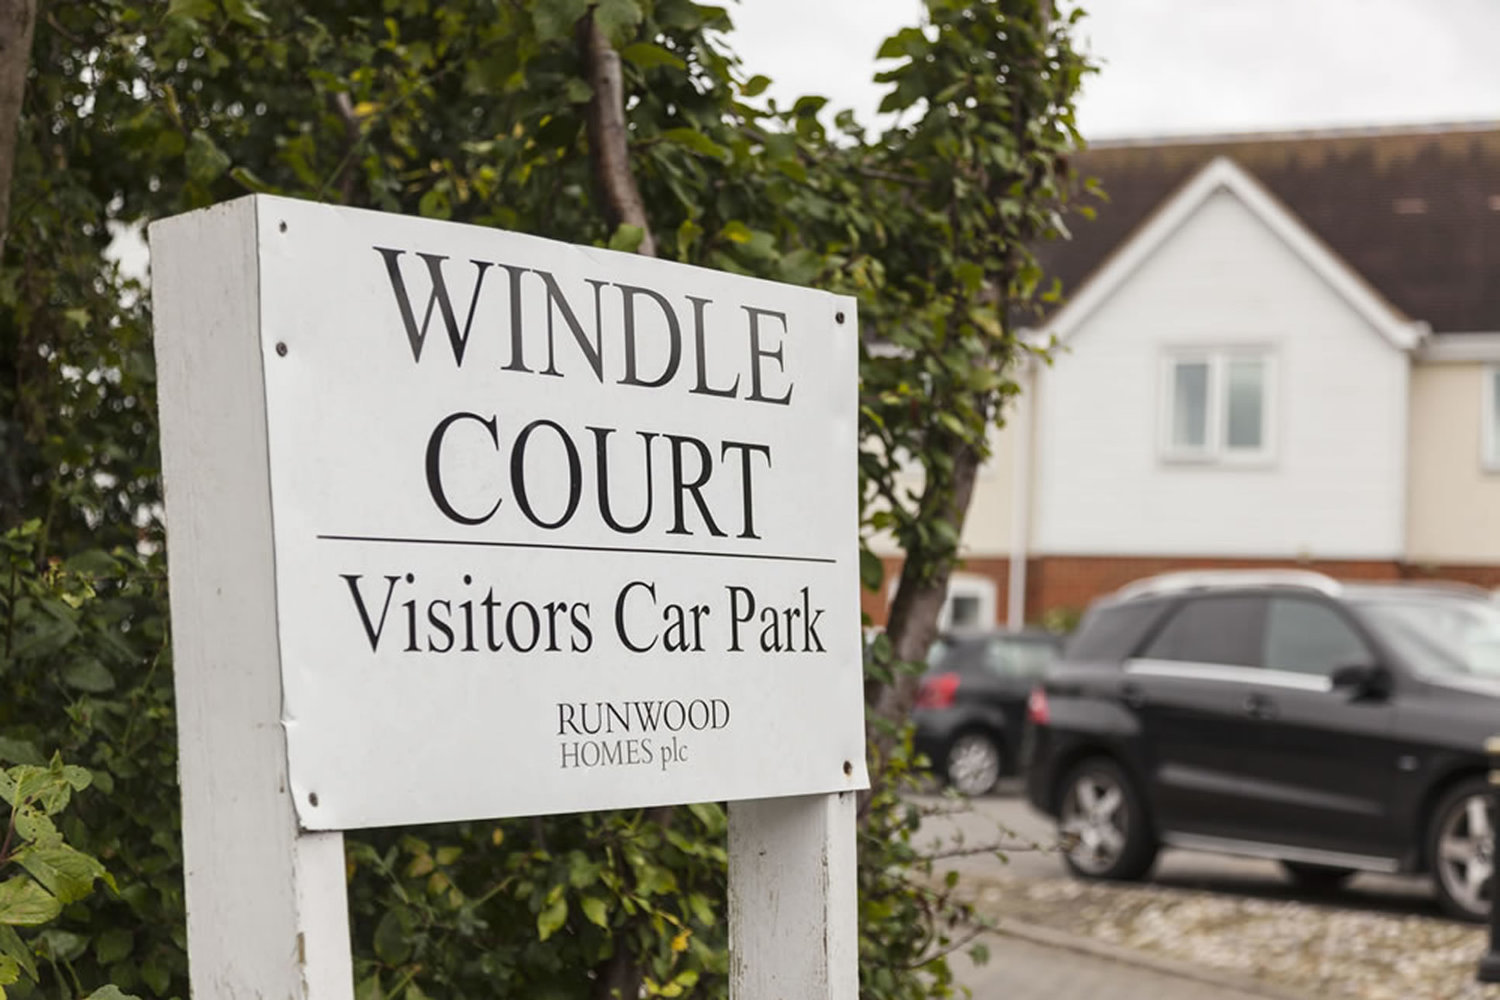 Windle Court